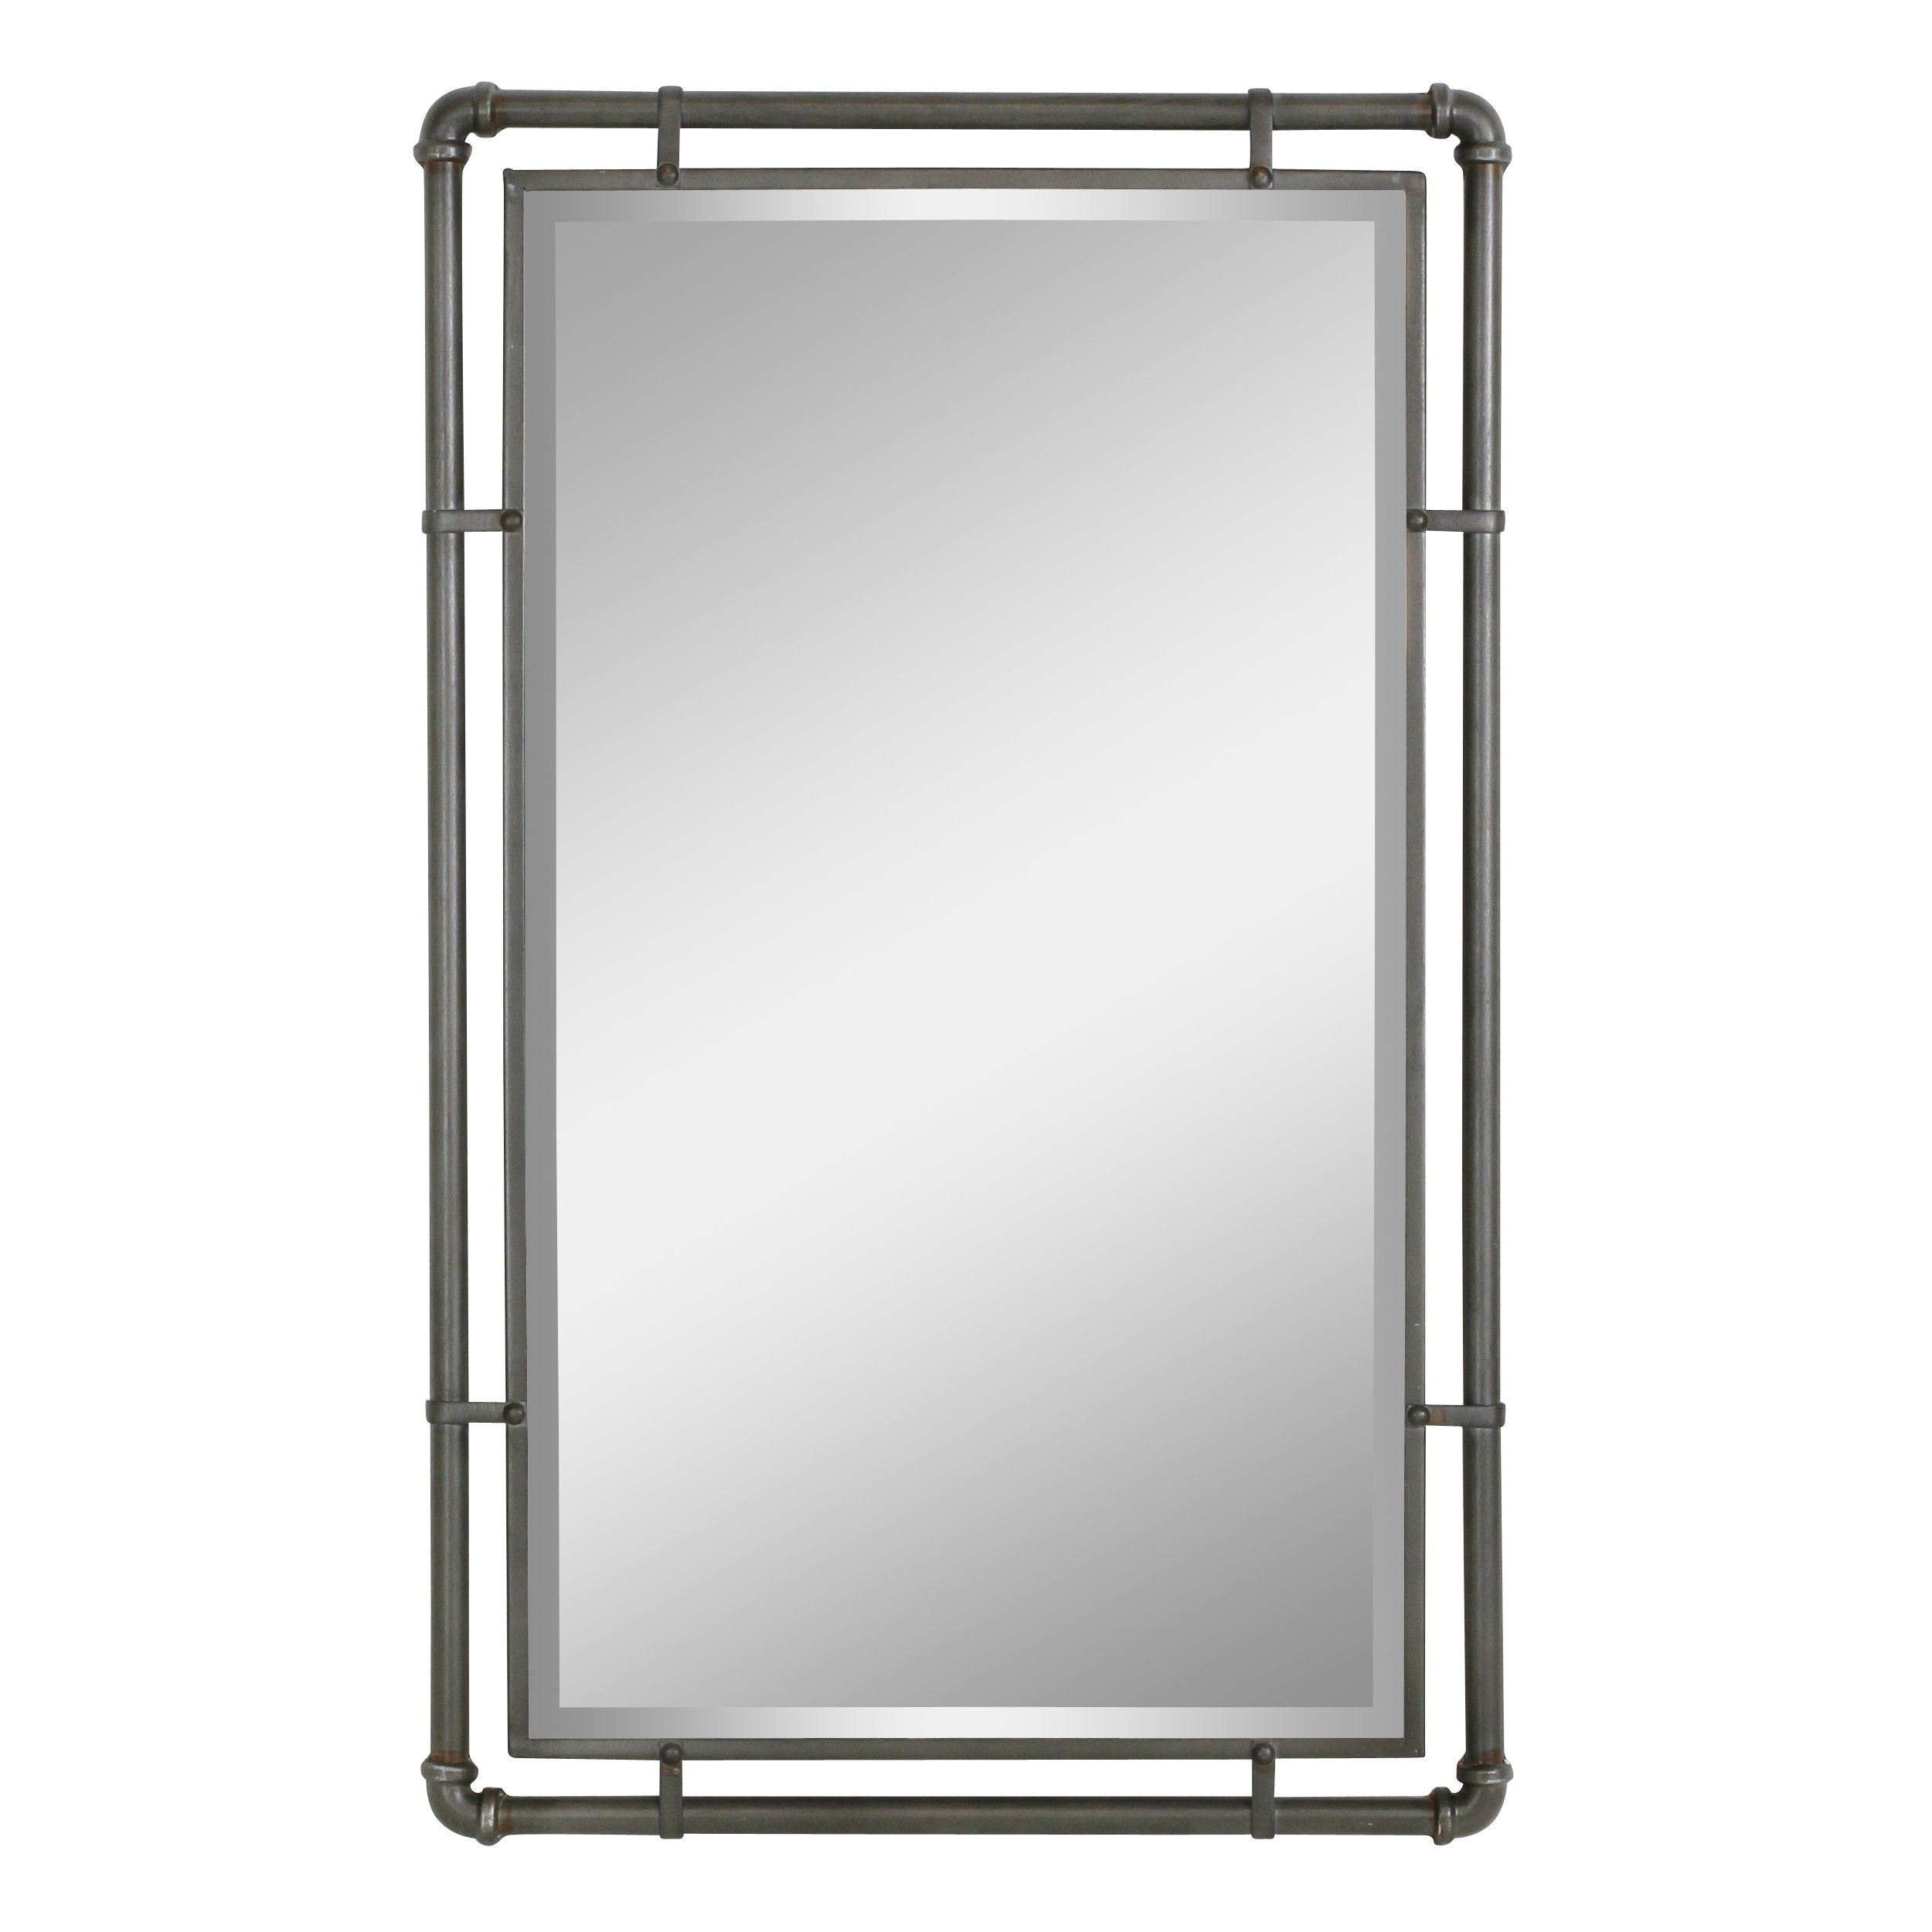 Featured Image of Koeller Industrial Metal Wall Mirrors